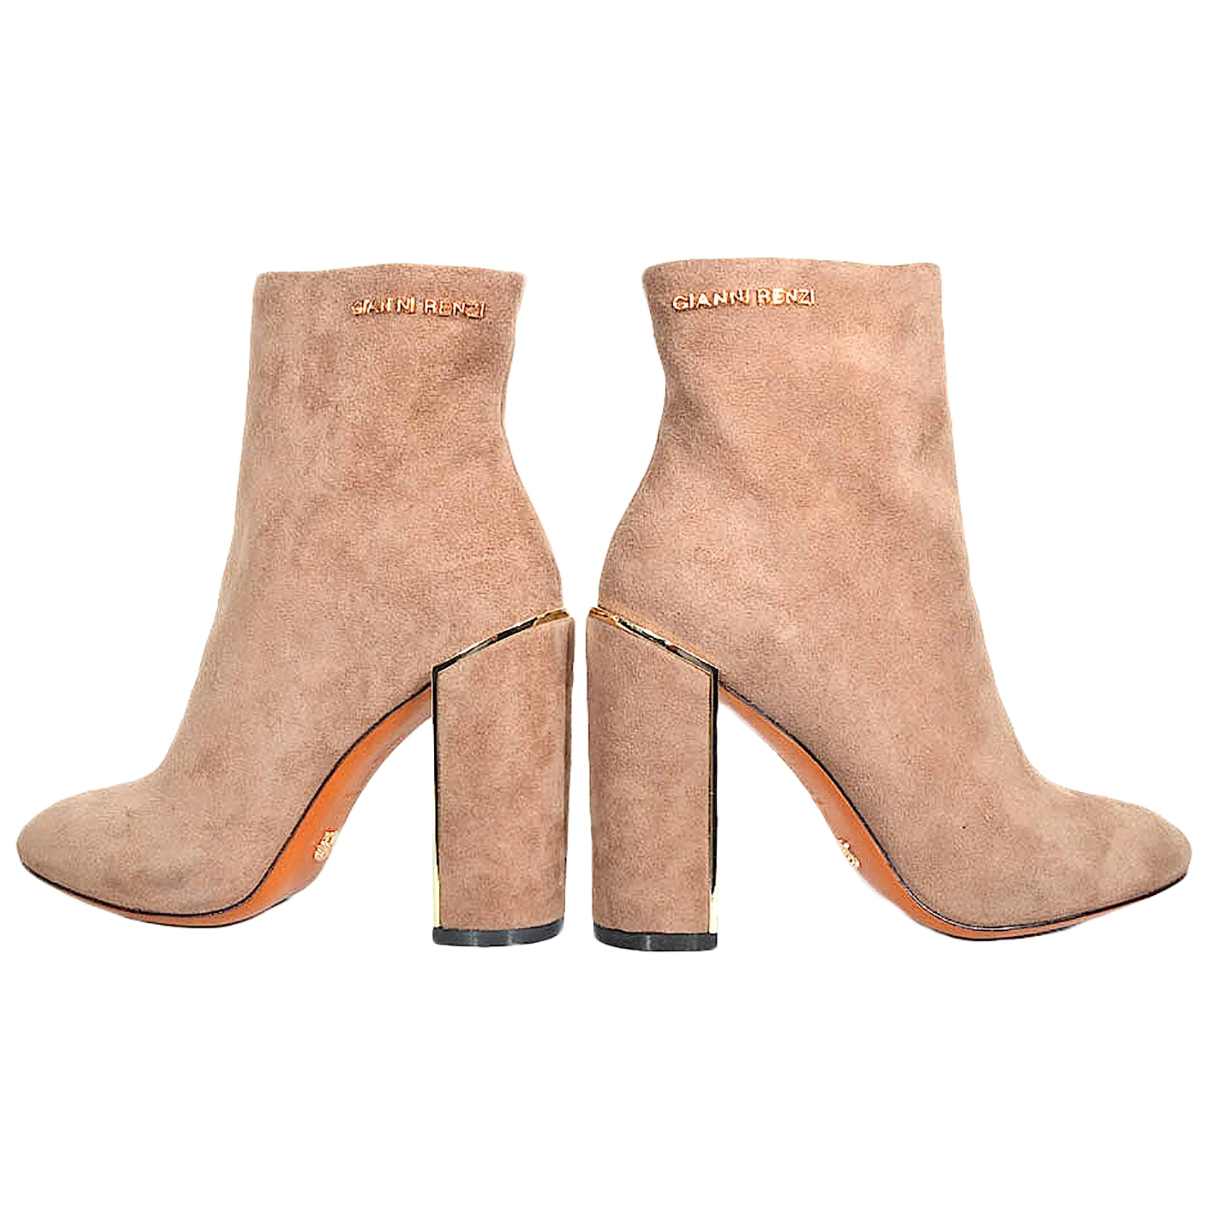 Non Signé / Unsigned \N Beige Leather Boots for Women 37 EU